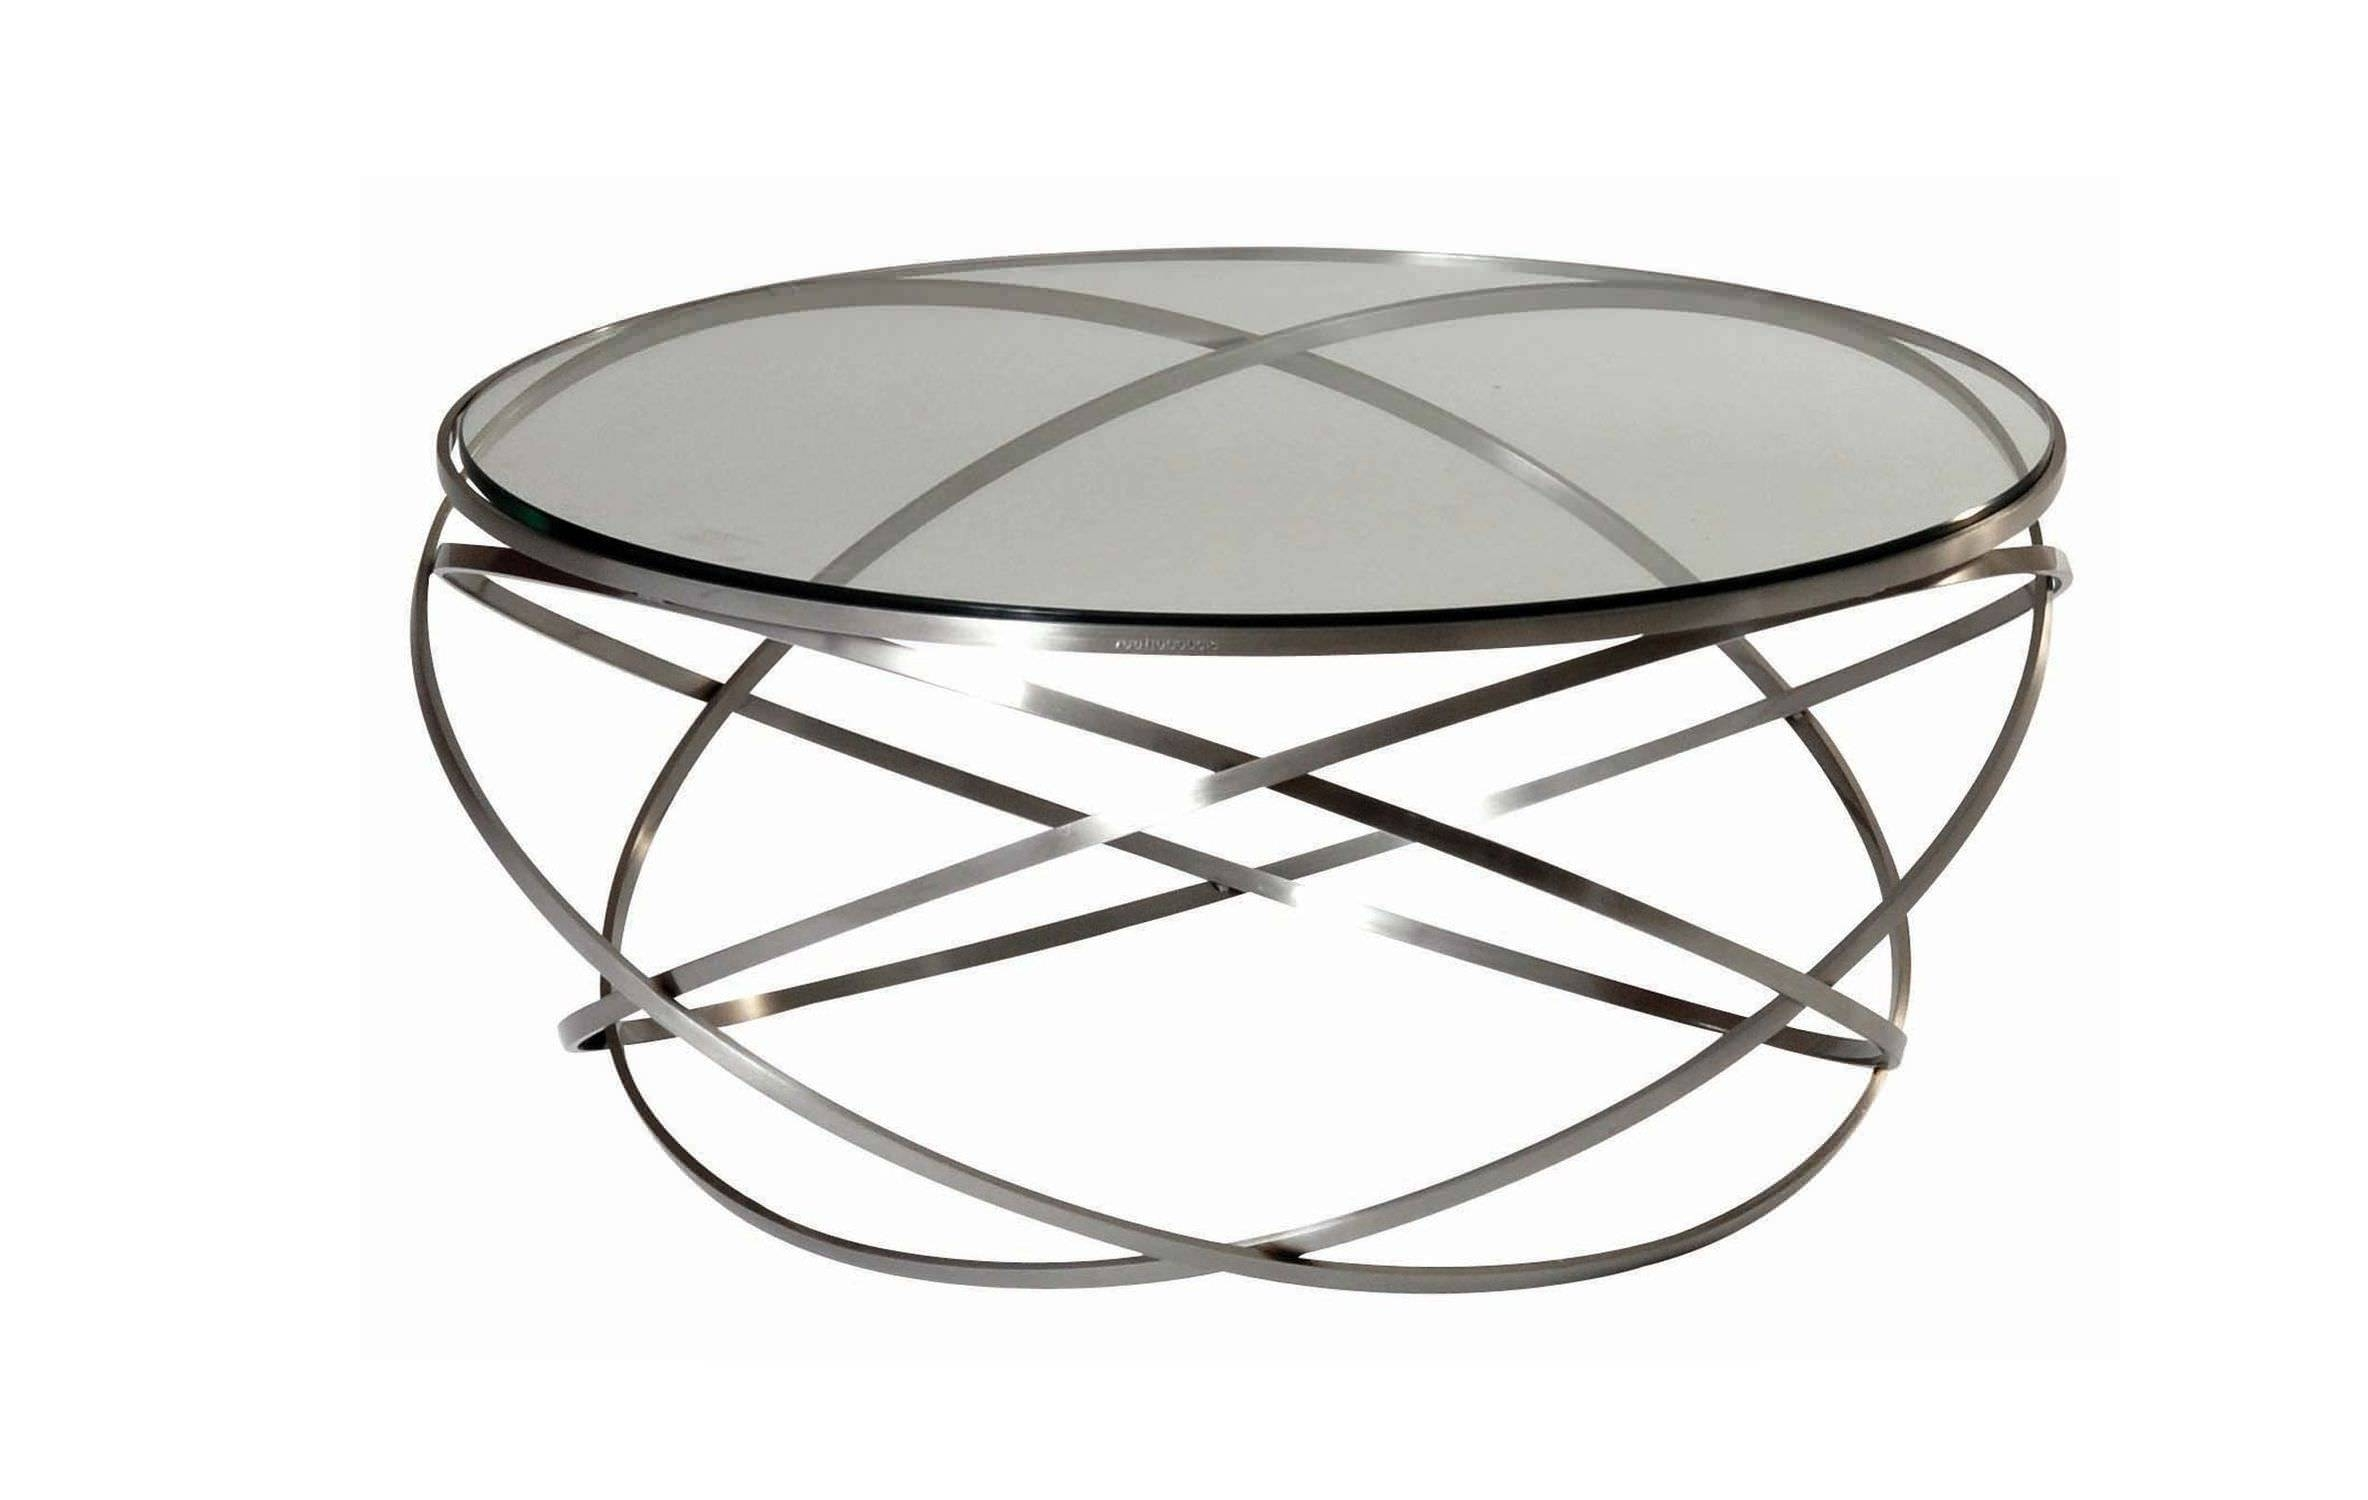 Contemporary Coffee Table / Glass / Steel / Round - Evolcédric within Round Steel Coffee Tables (Image 14 of 30)